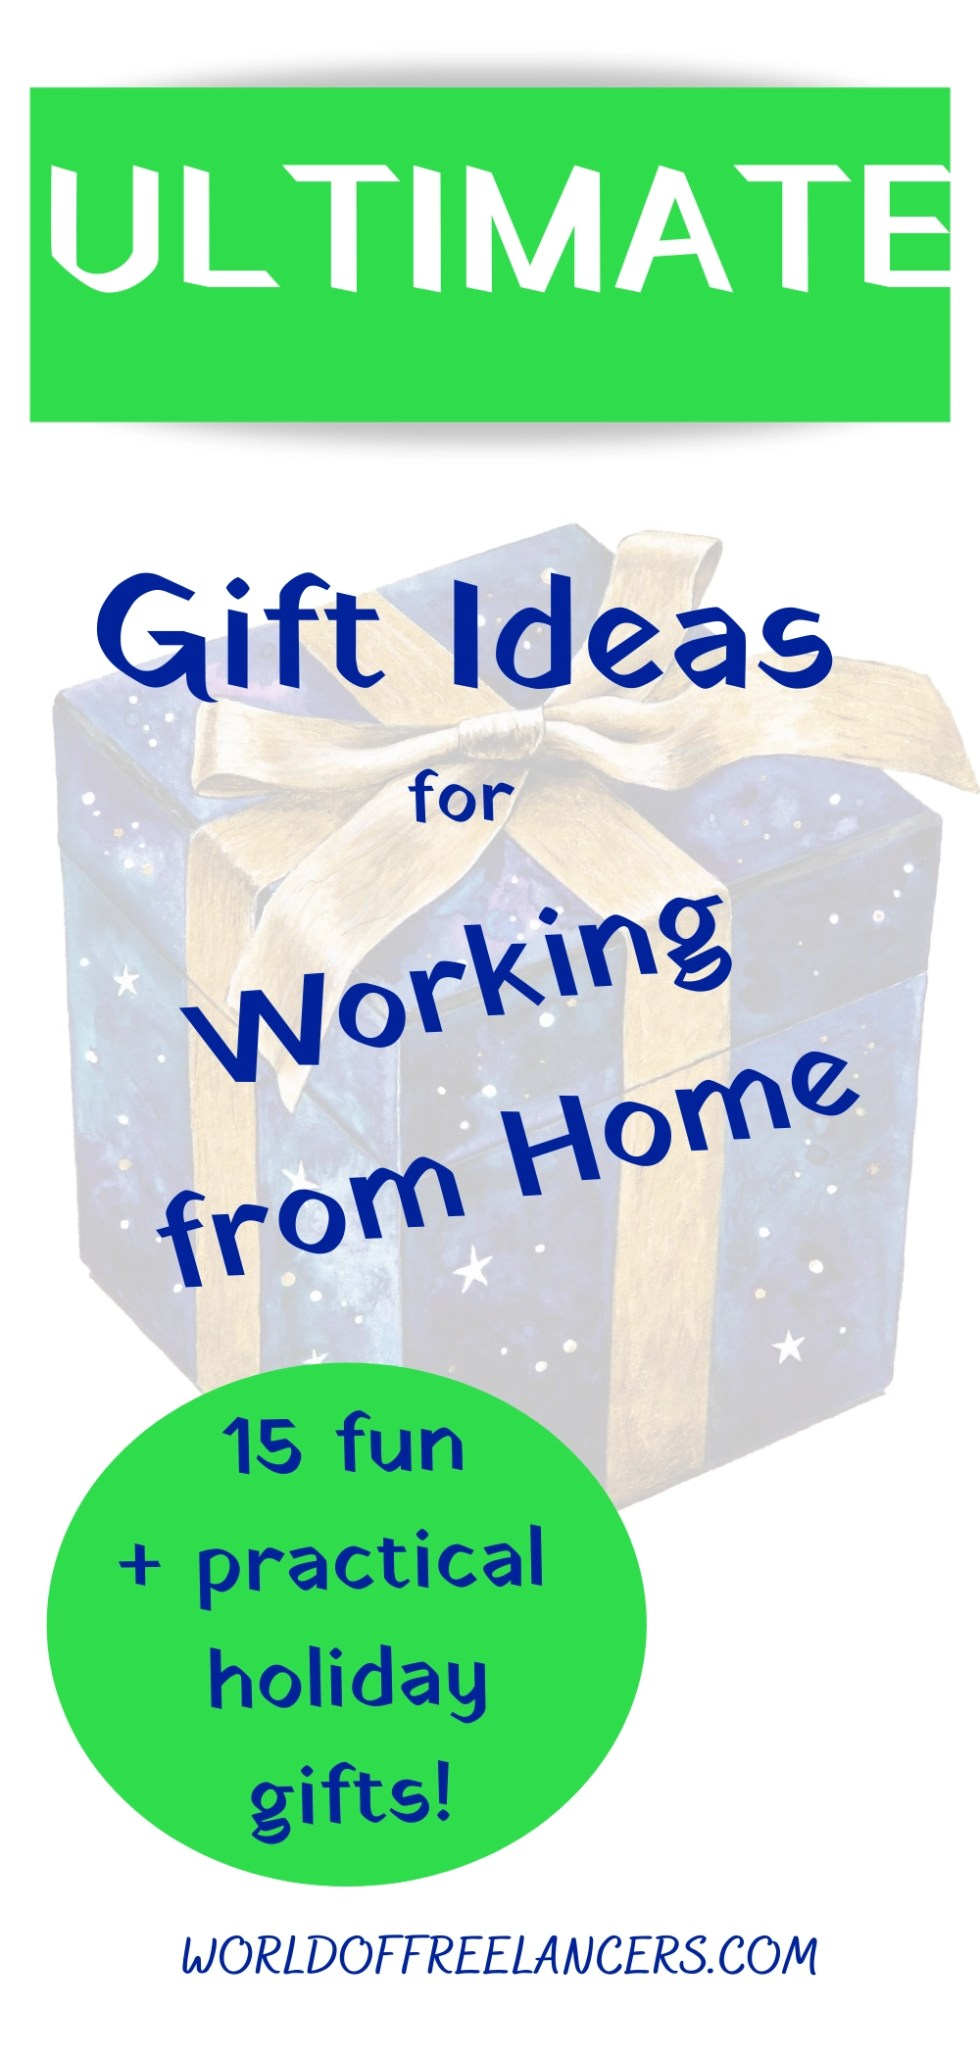 Ultimate gift ideas for working from home Pinterest image